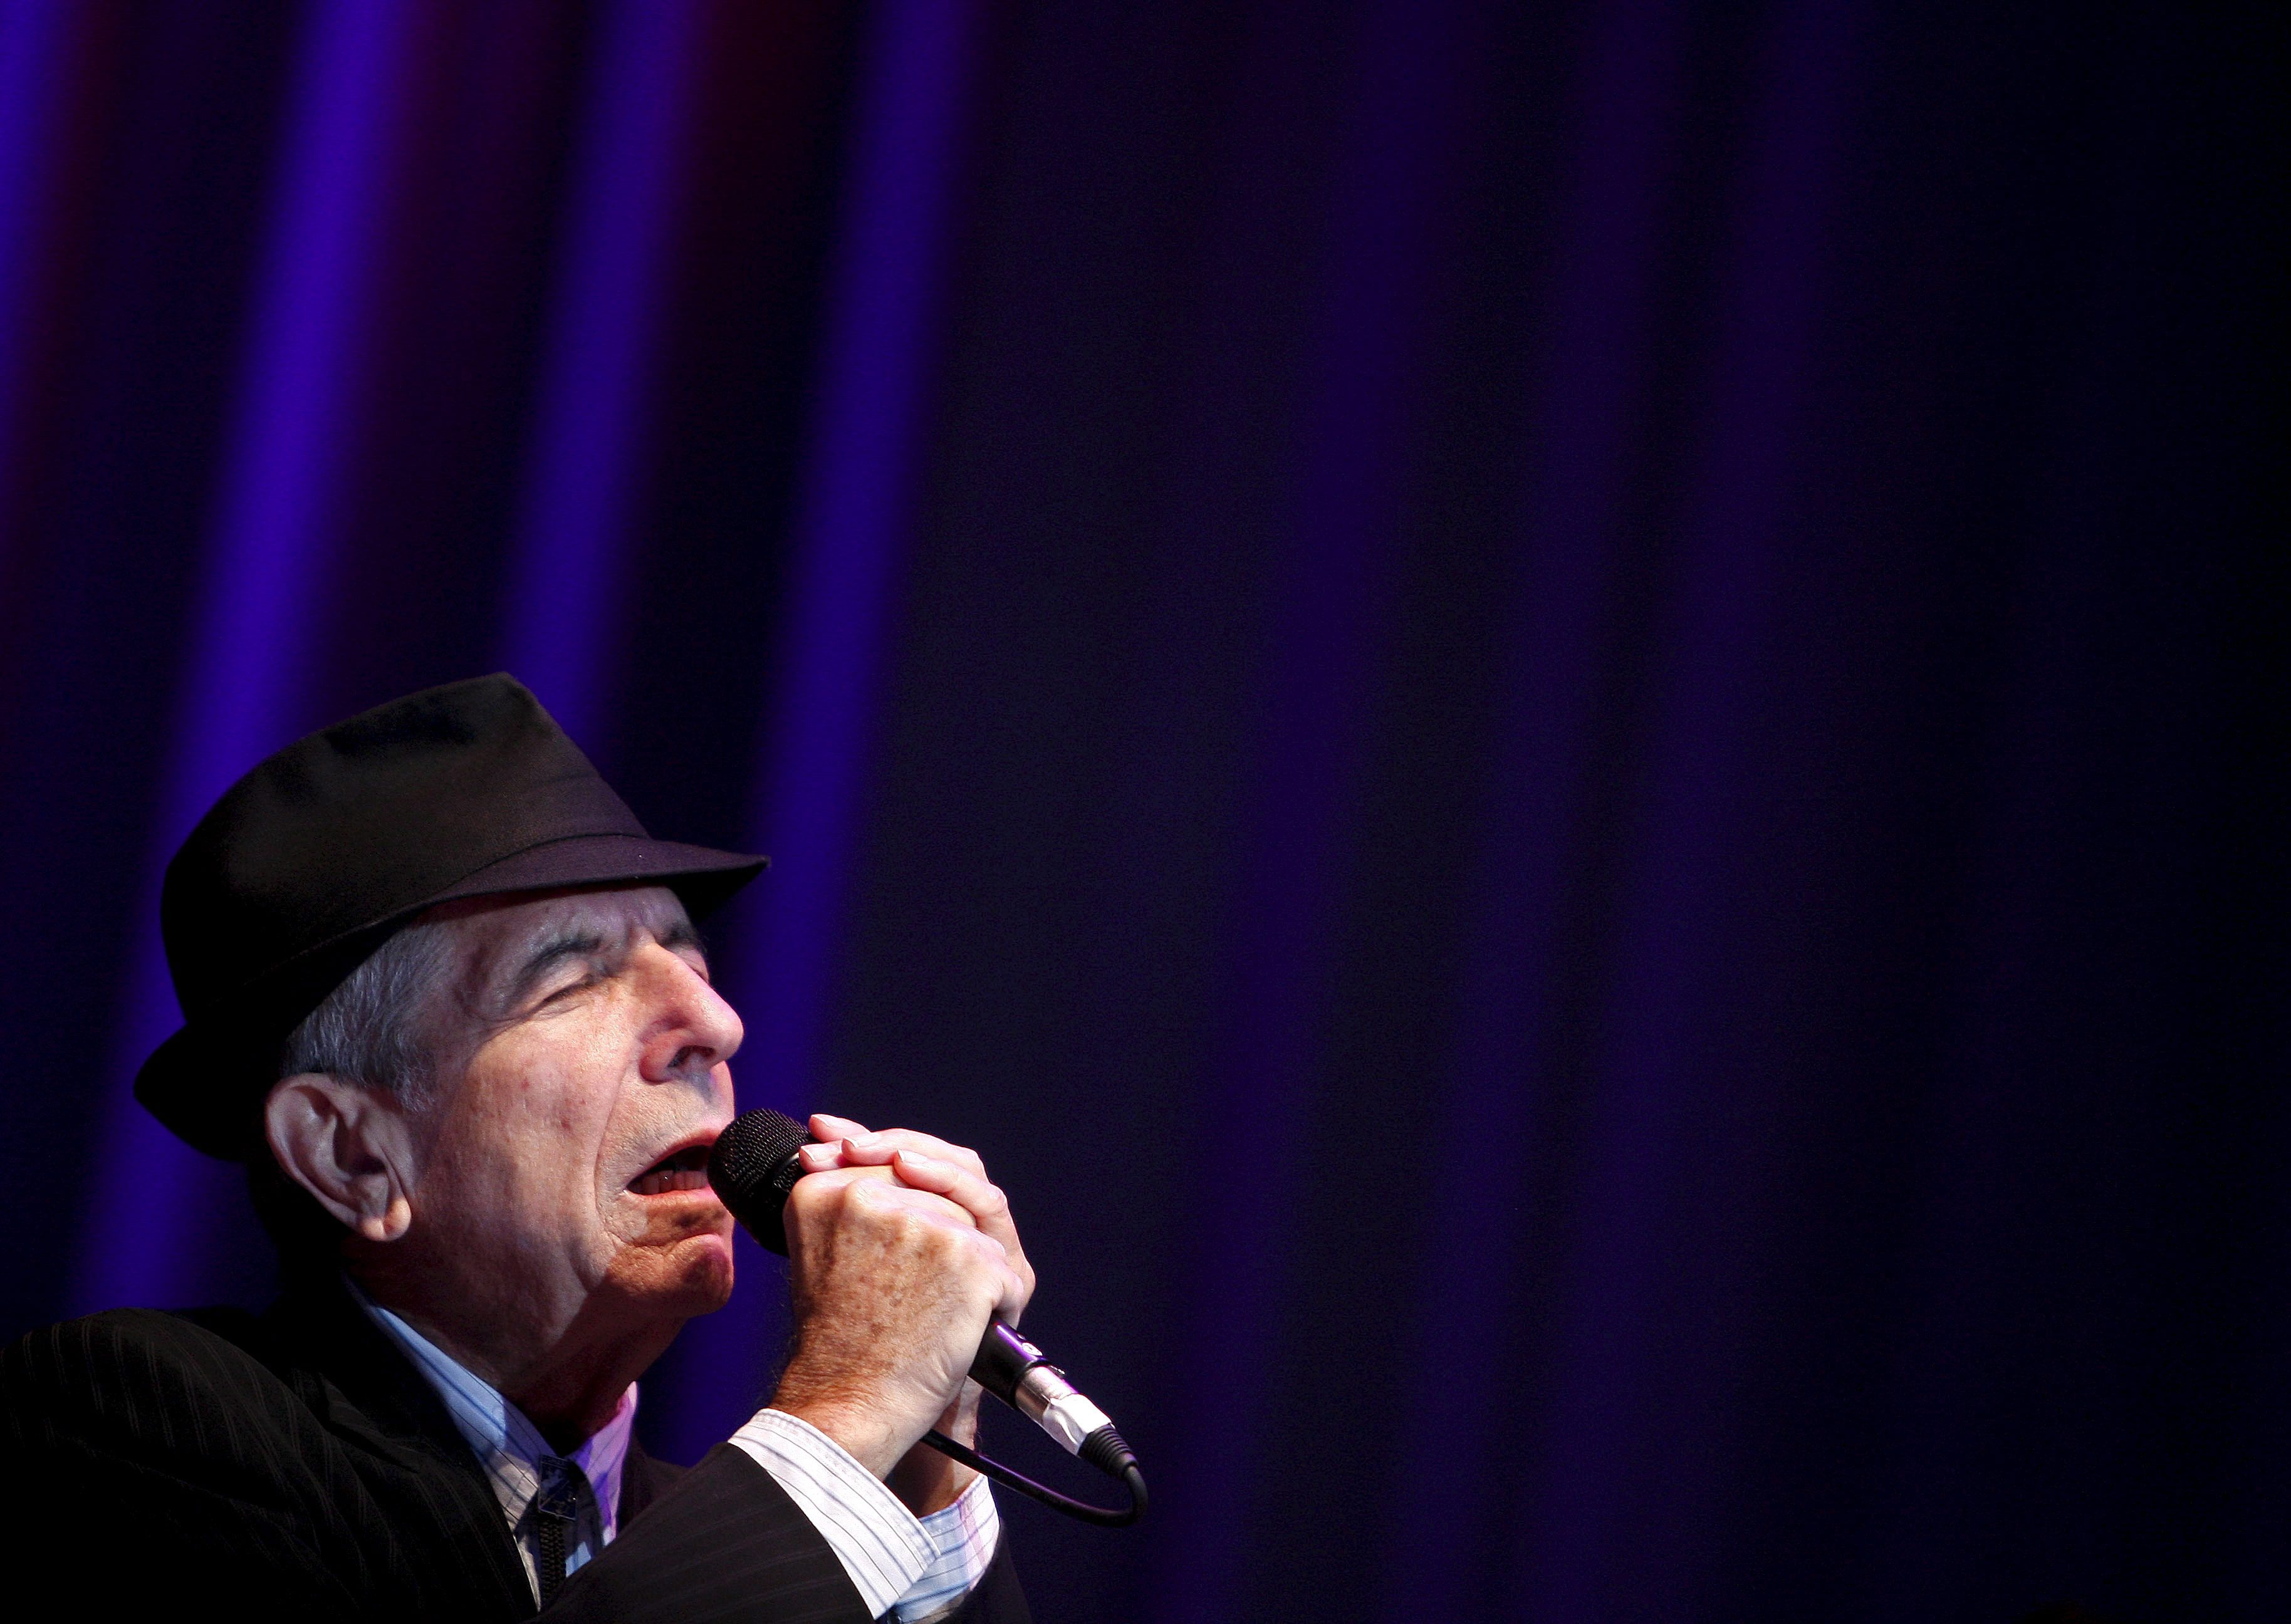 epa05626119 (FILE) A file picture dated 19 July 2008. shows Canadian singer Leonard Cohen performing during a concert in Lisbon, Portugal. Leonard Cohen has died aged 82 on 10 November 2016. EPA/TIAGO PETINGA *** Local